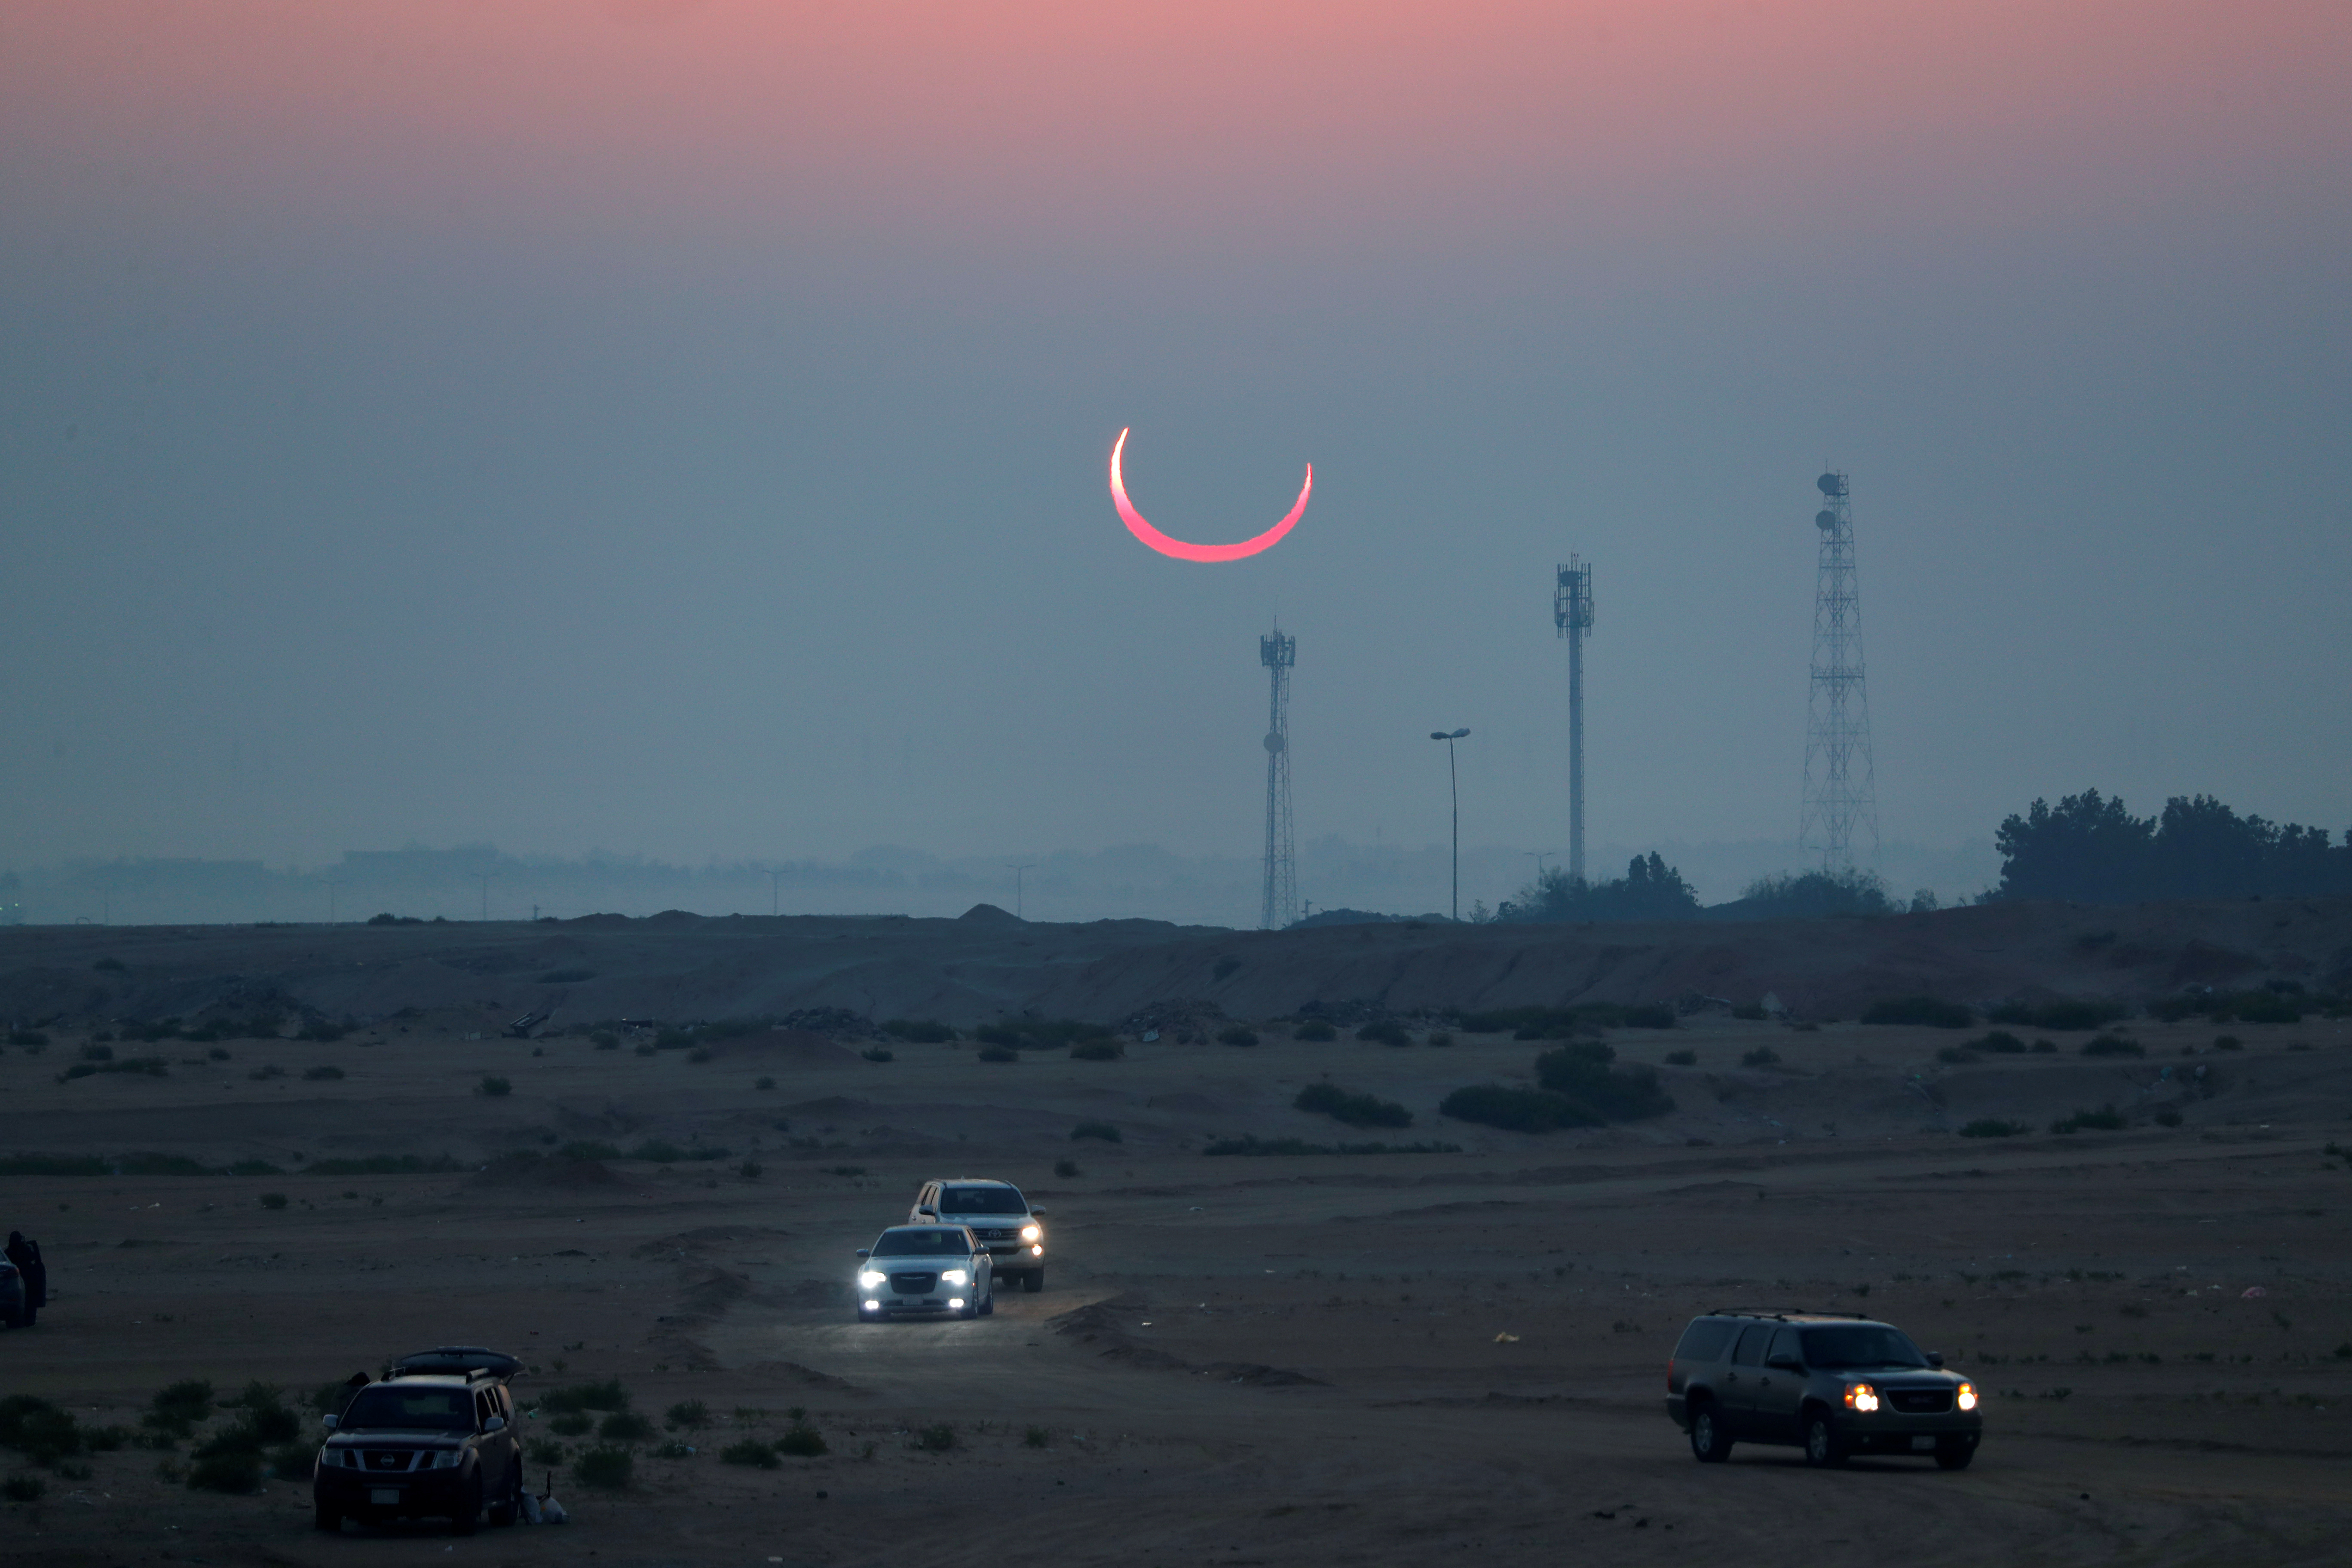 eclipse observed in desert in Hofuf, Saudi Arabia.